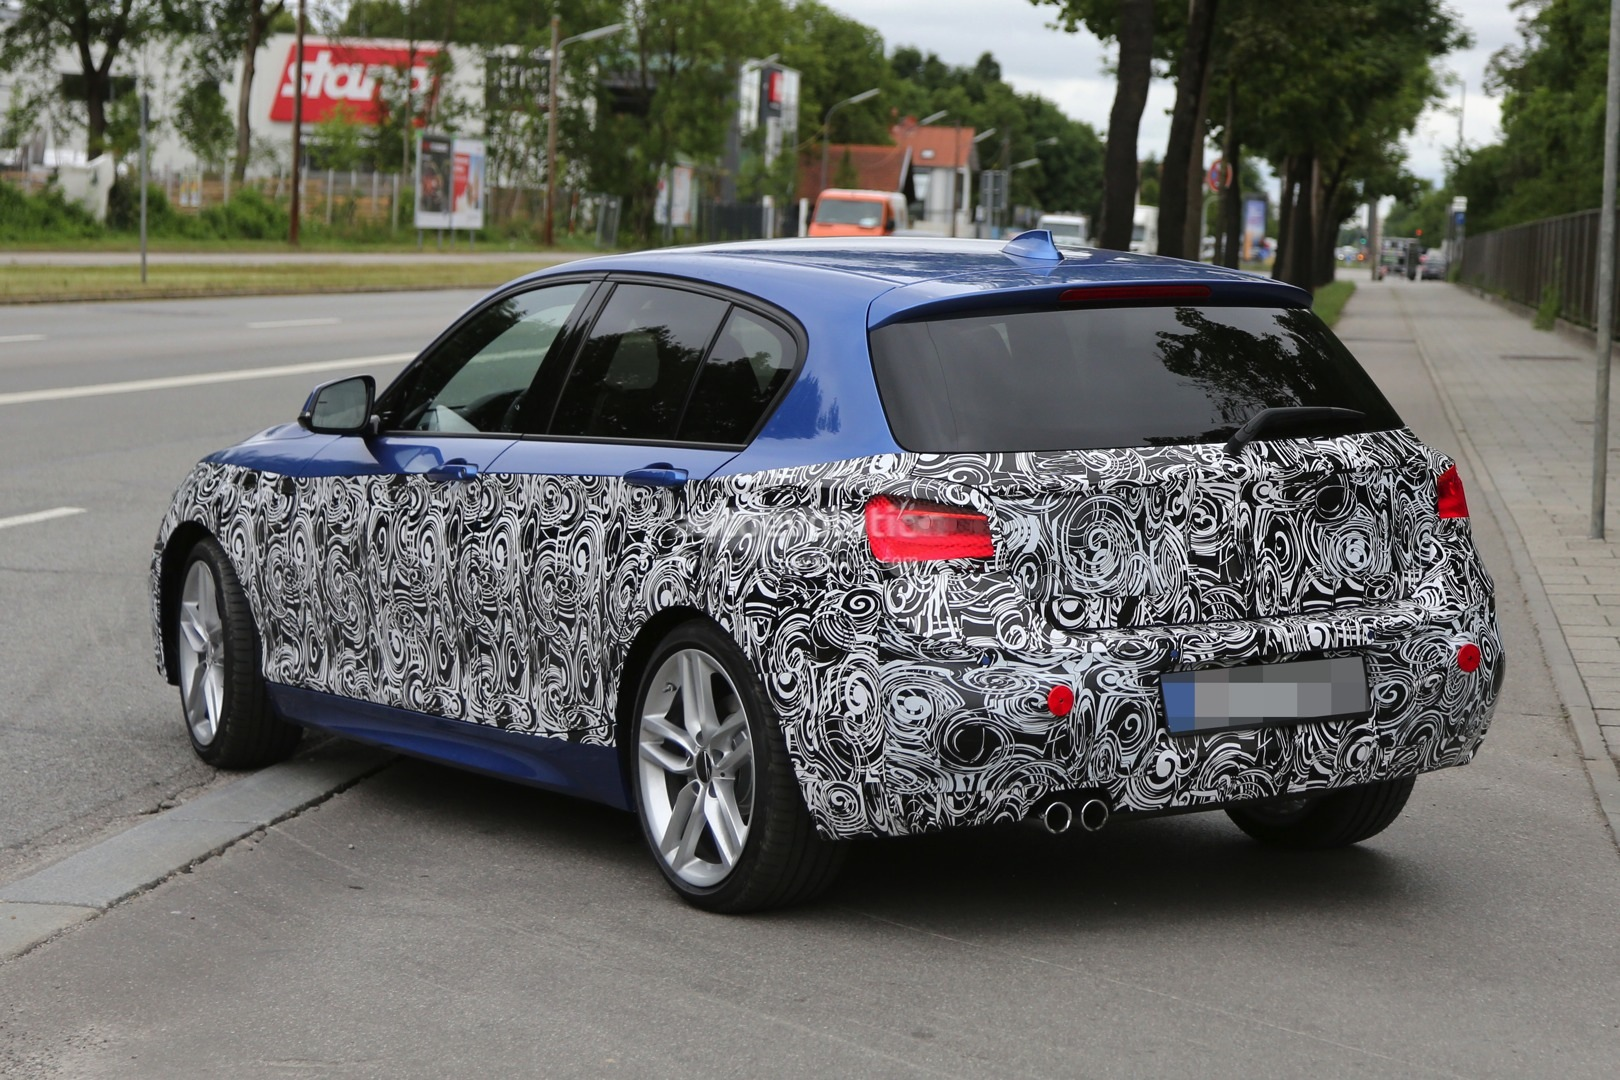 2015 - [BMW] Série 1 restylée [F20/21] - Page 7 2015-bmw-1-series-facelift-spied-with-a-new-face-photo-gallery_5